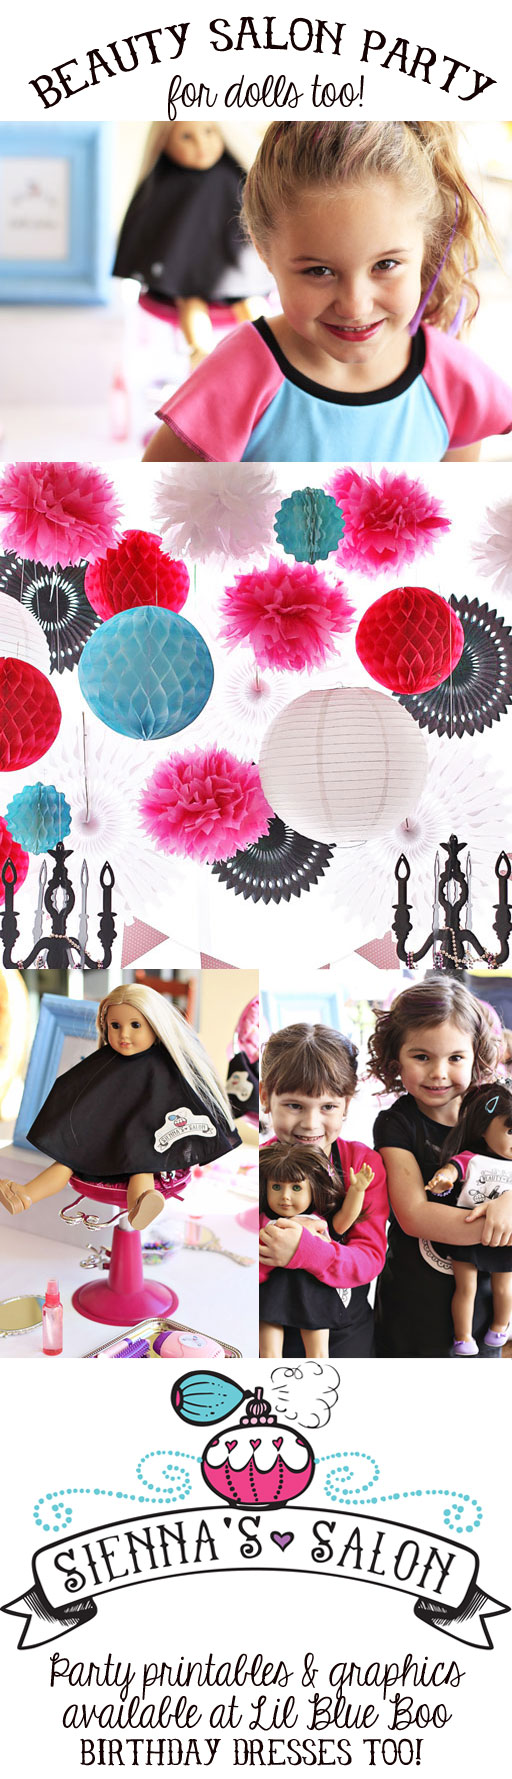 Beauty Salon Party (with American Girl Salon too!) via lilblueboo.com #americangirl #party #diy